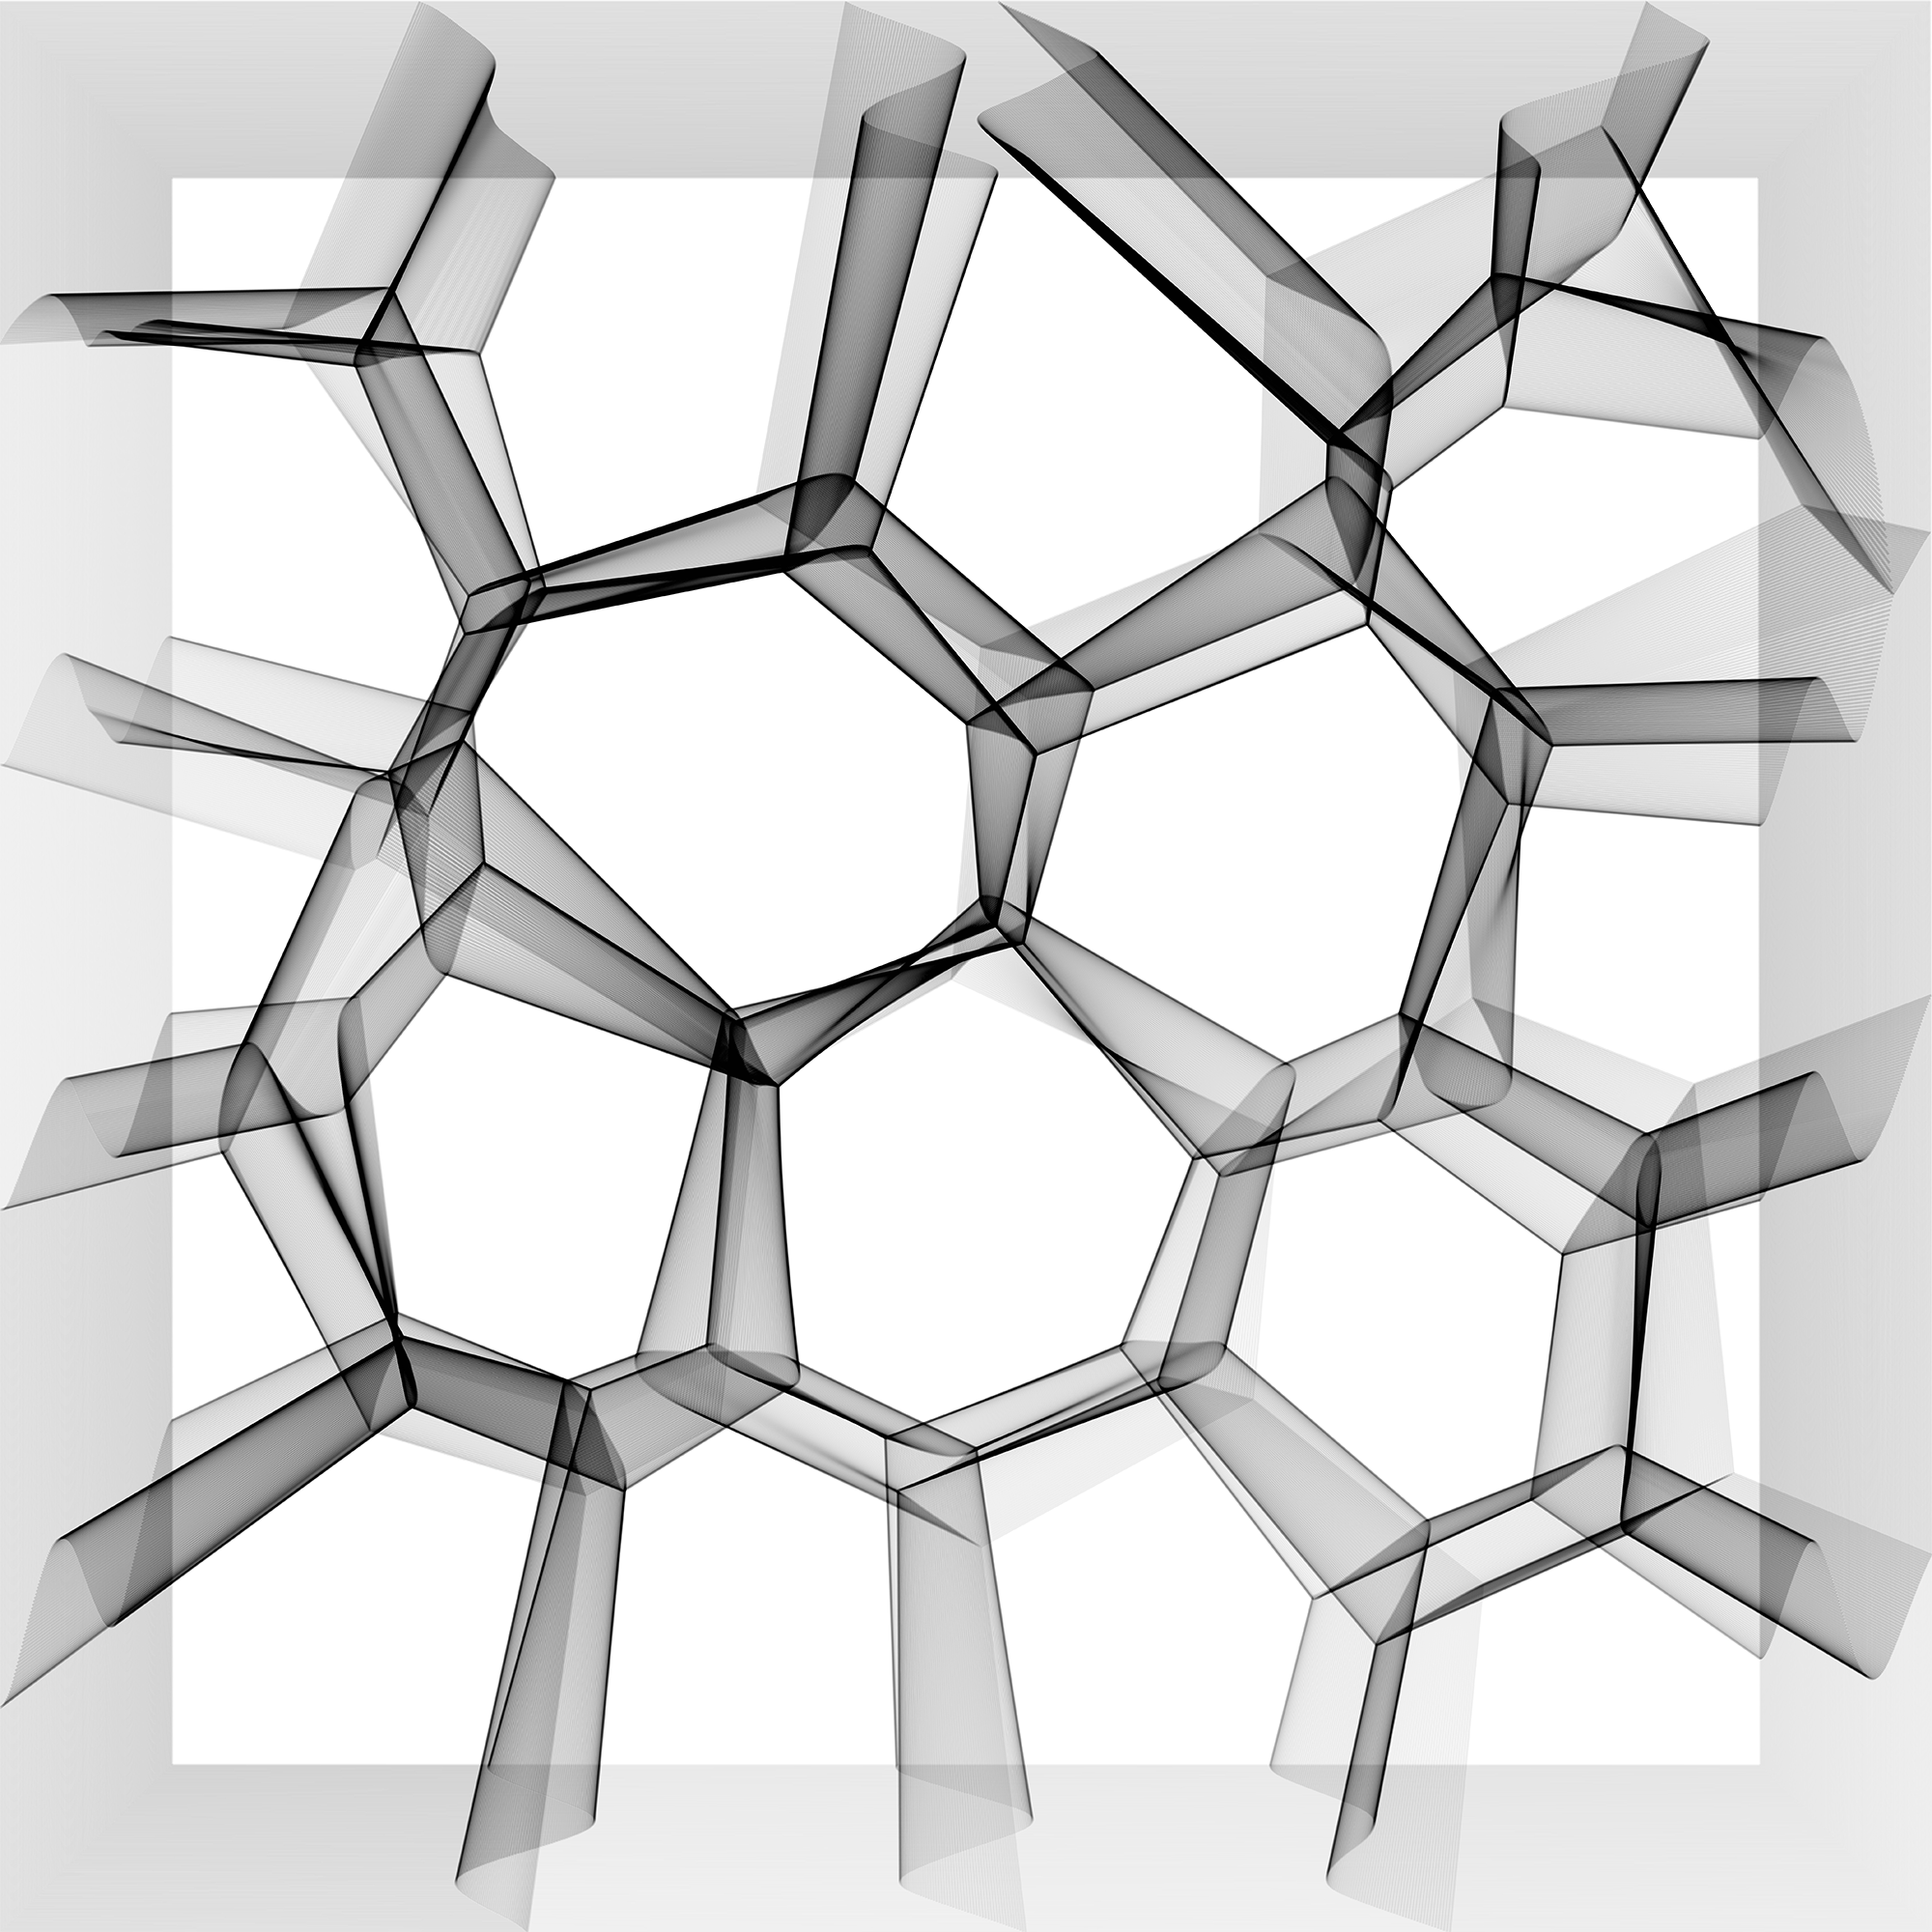 Voronoi2Layer-2014-05-28-00-24-13-486_high.png